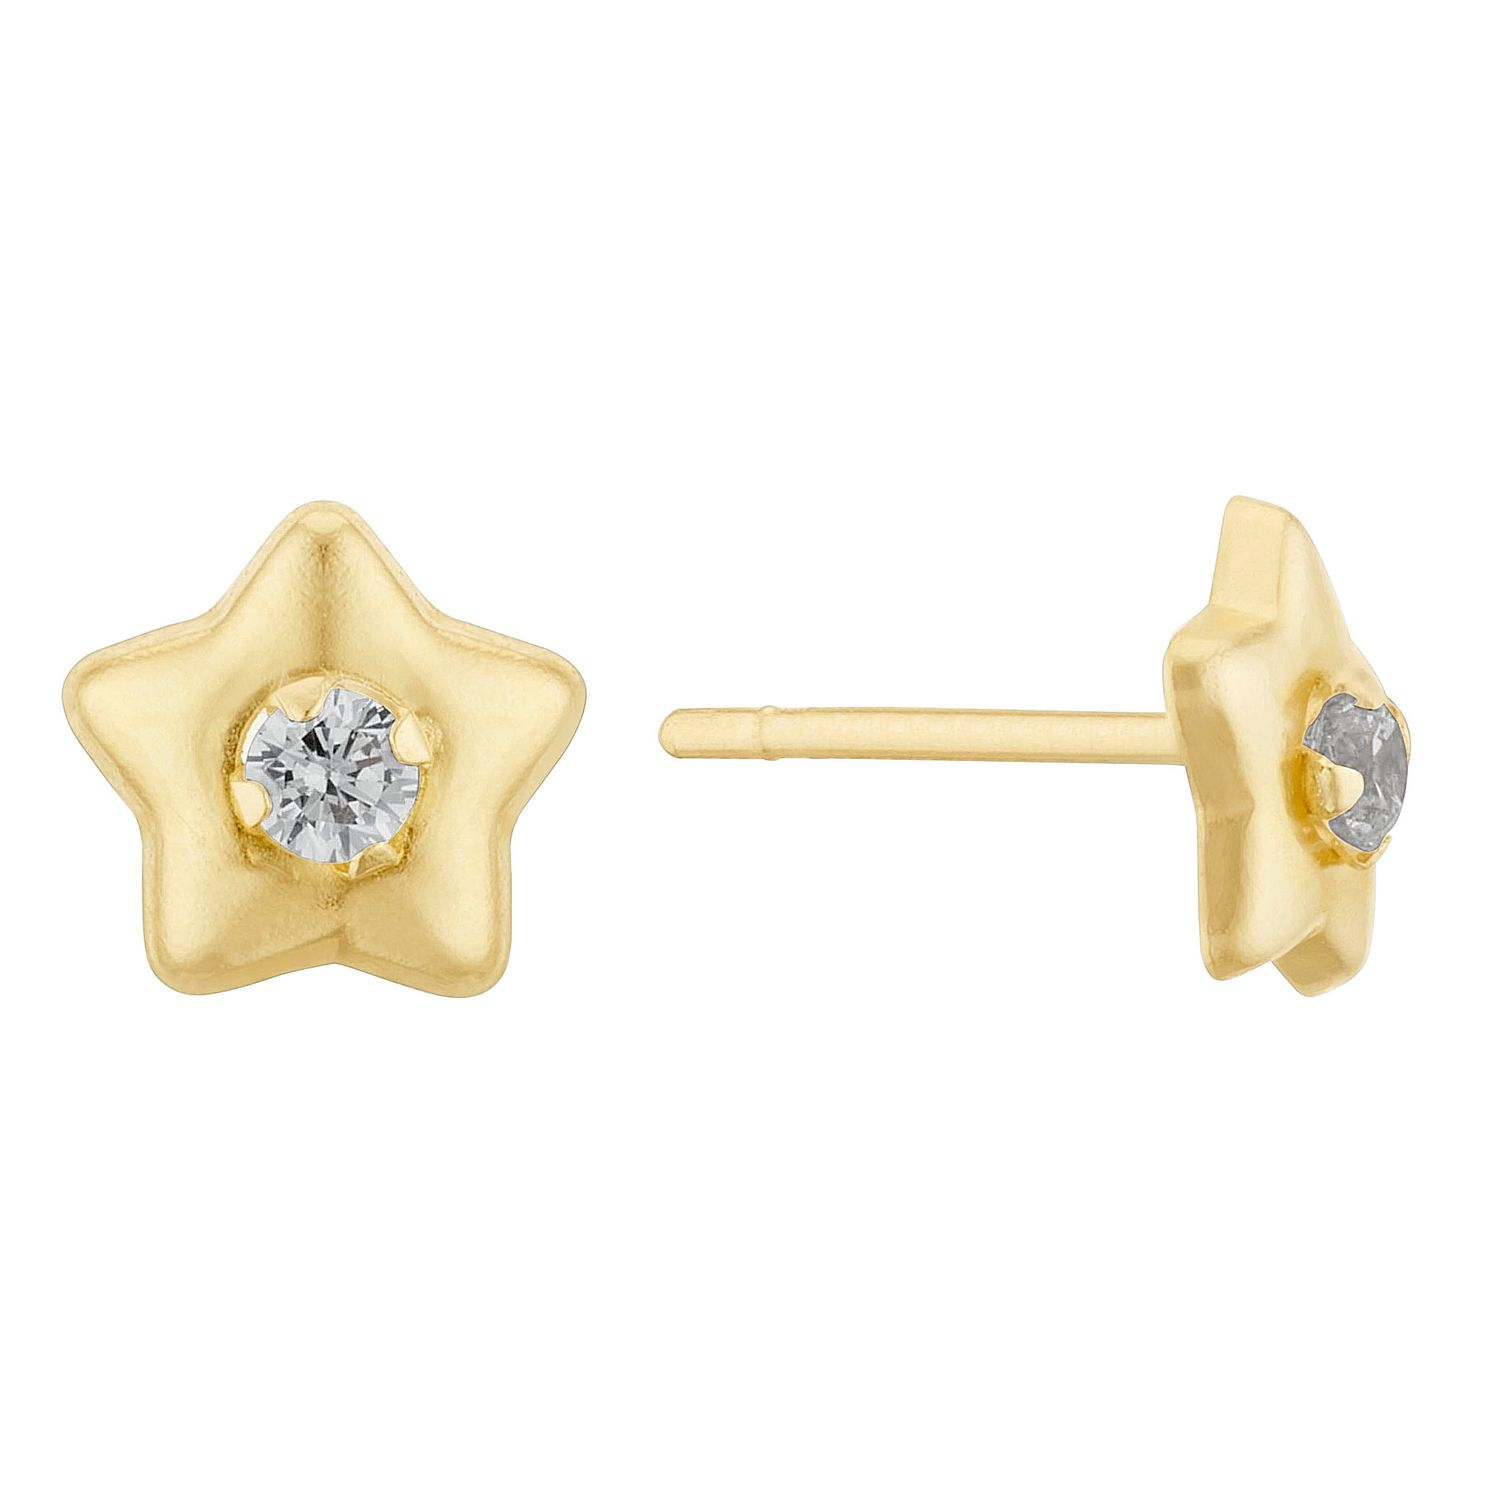 9ct Yellow Gold Cubic Zirconia Star Stud Earrings - Product number 3405540